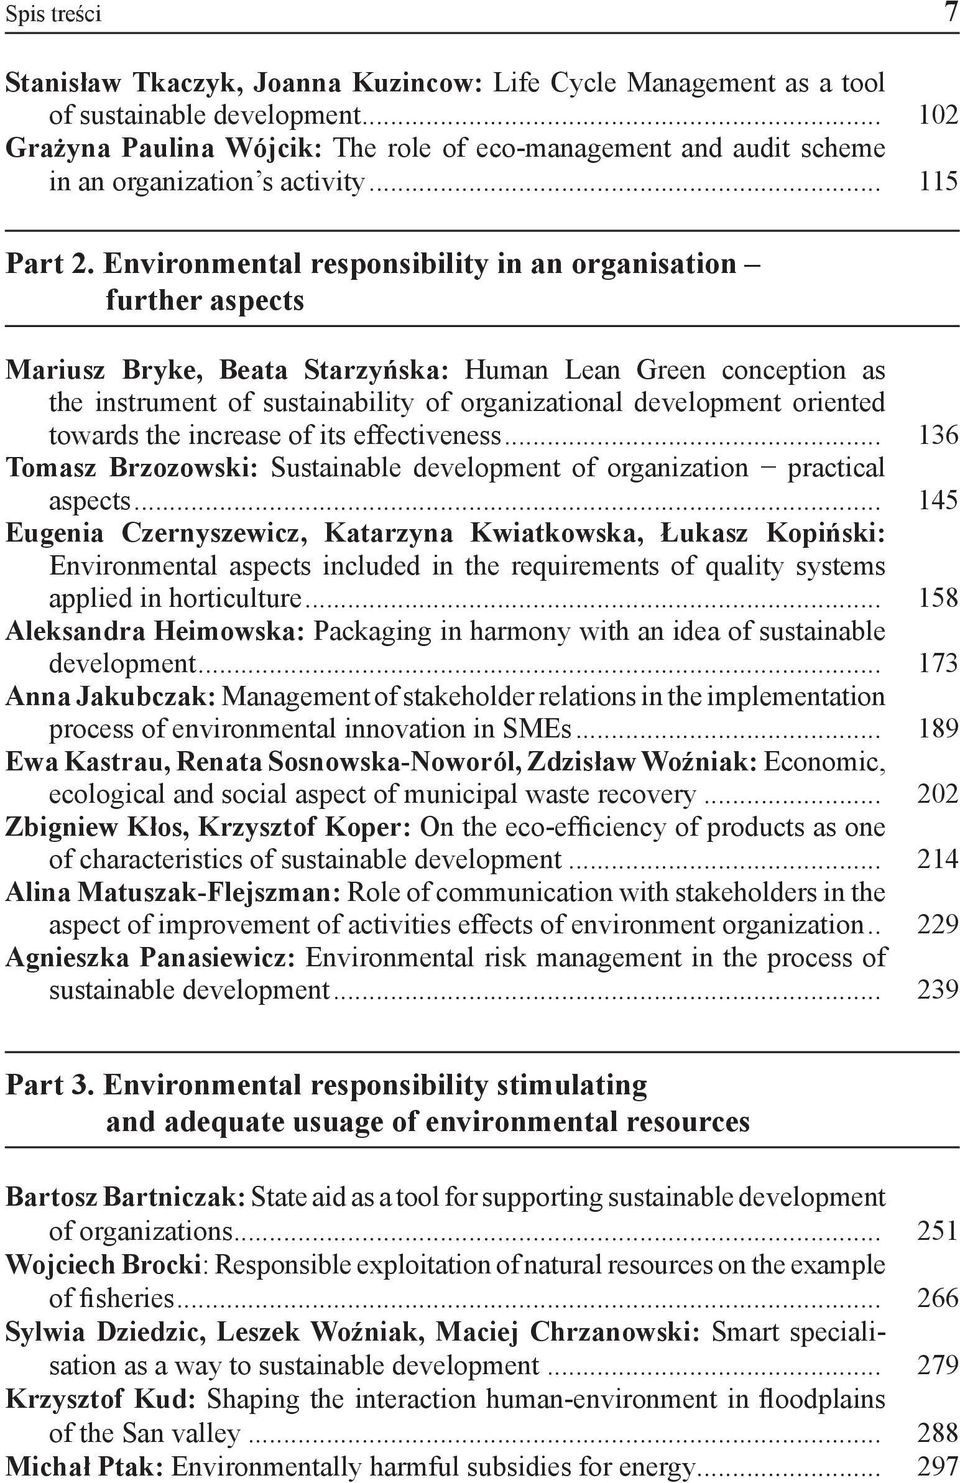 Environmental responsibility in an organisation further aspects Mariusz Bryke, Beata Starzyńska: Human Lean Green conception as the instrument of sustainability of organizational development oriented